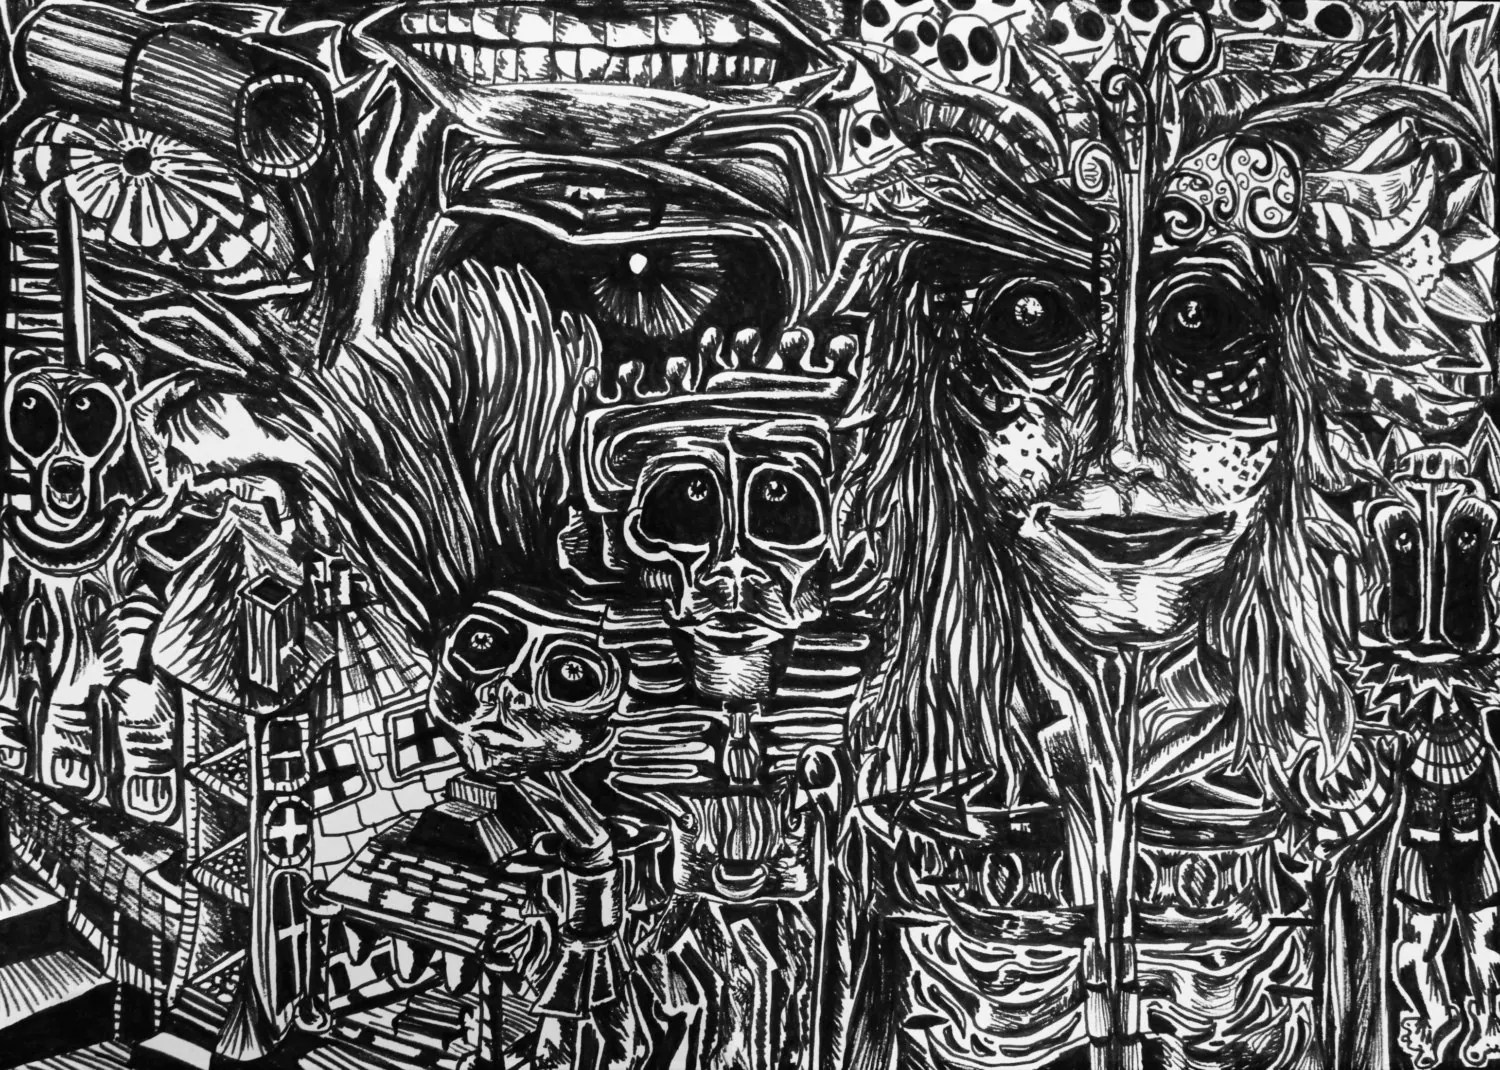 Trippy Surreal Art Drawings Black and White